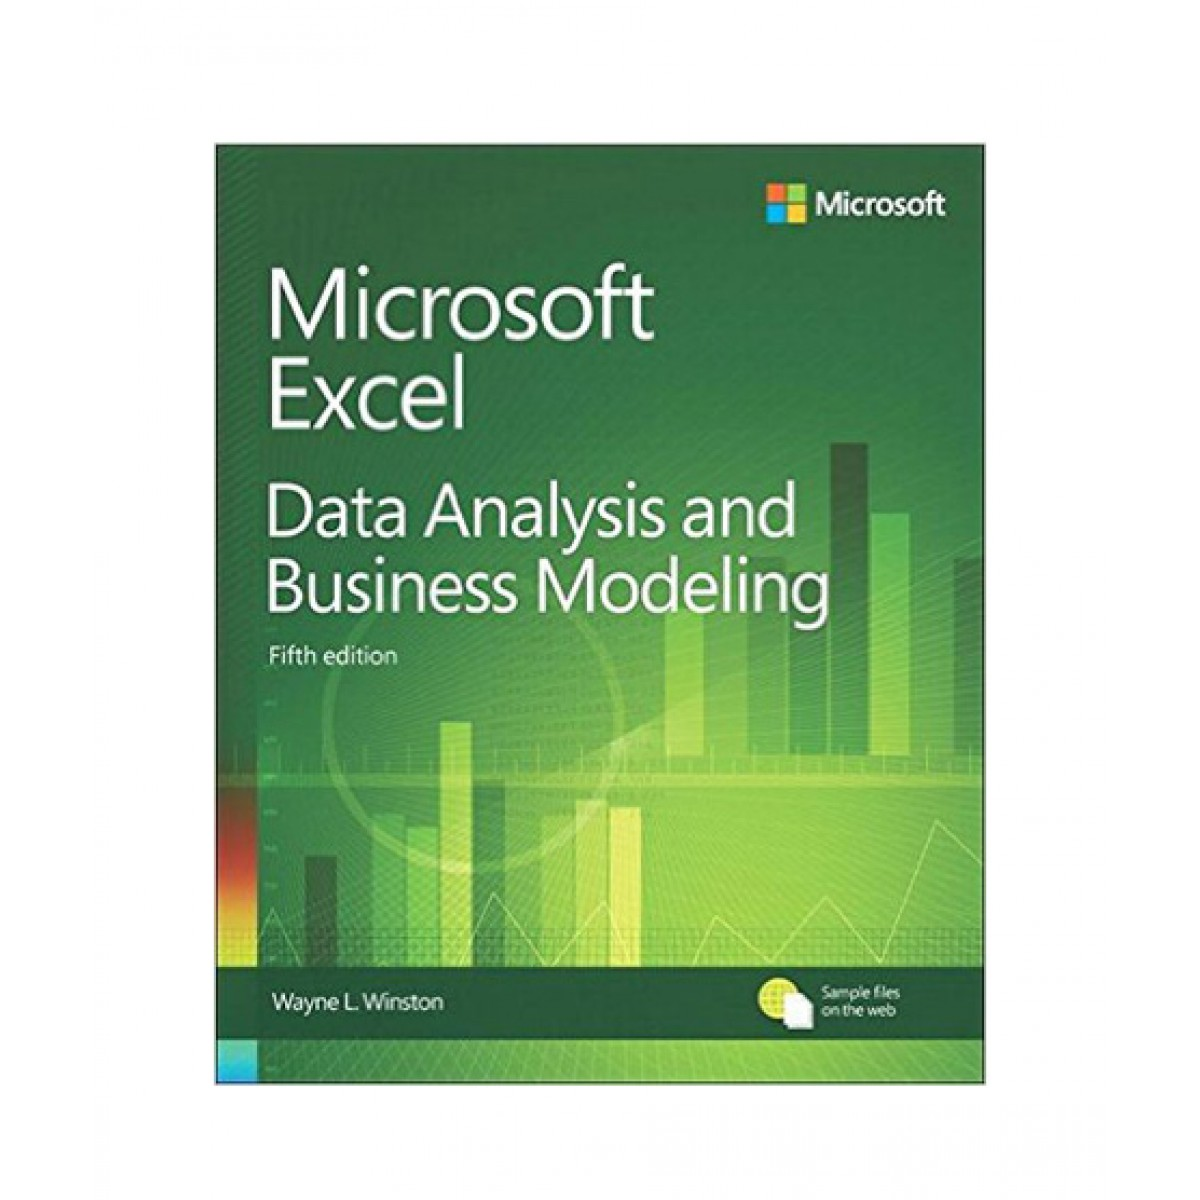 Microsoft Excel Data Analysis and Business Modeling Book 5th Edition